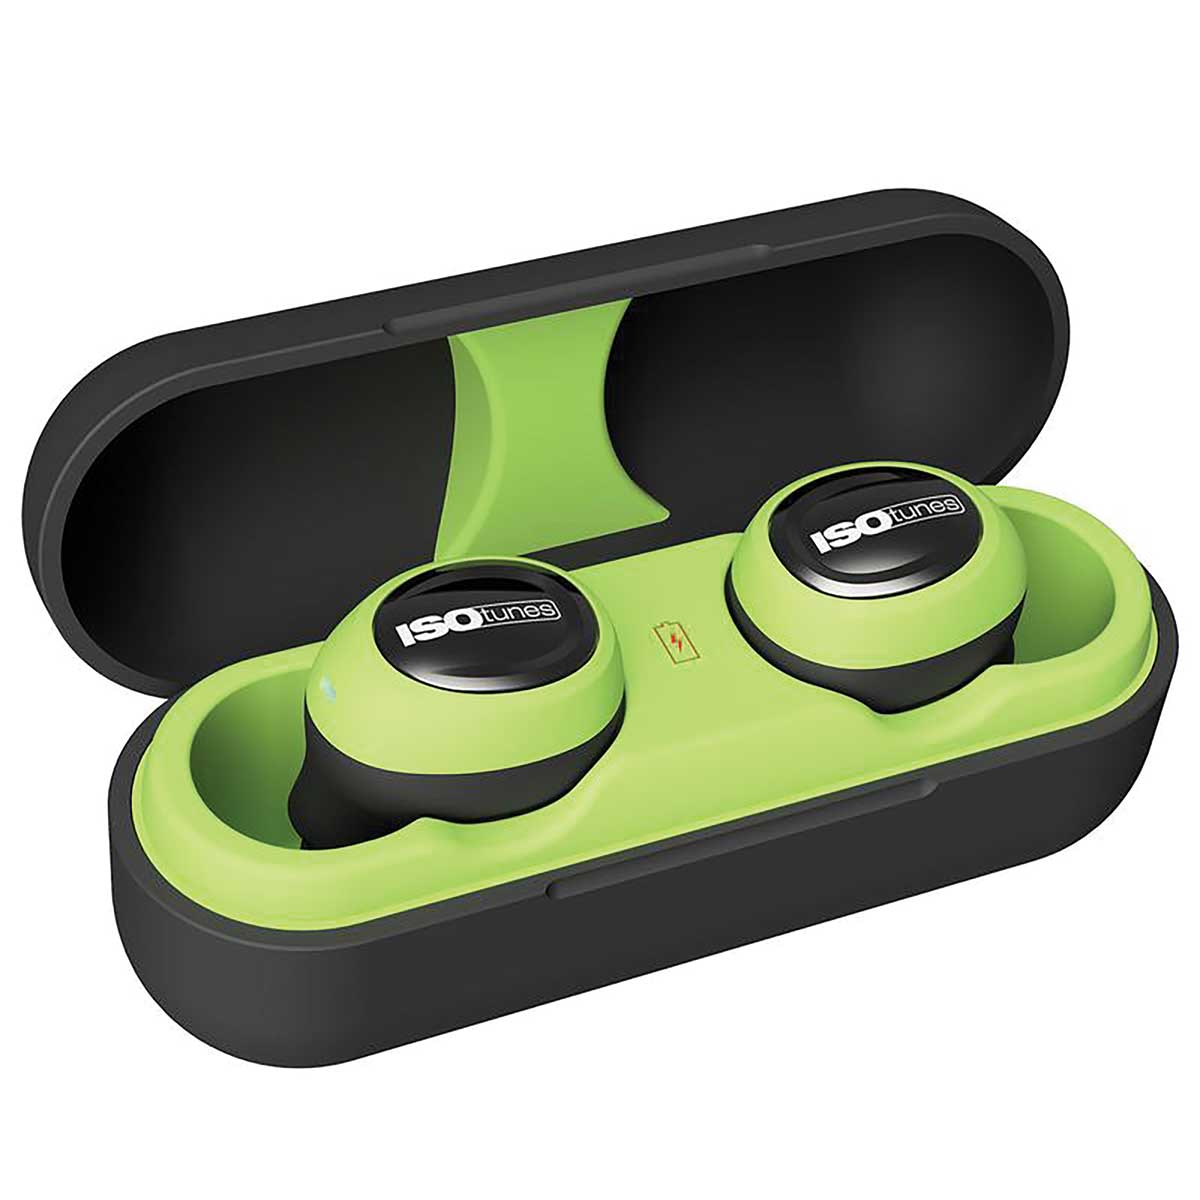 ISOtunes Free Noise-Isolating Hearing Protection Earbuds Black/Green